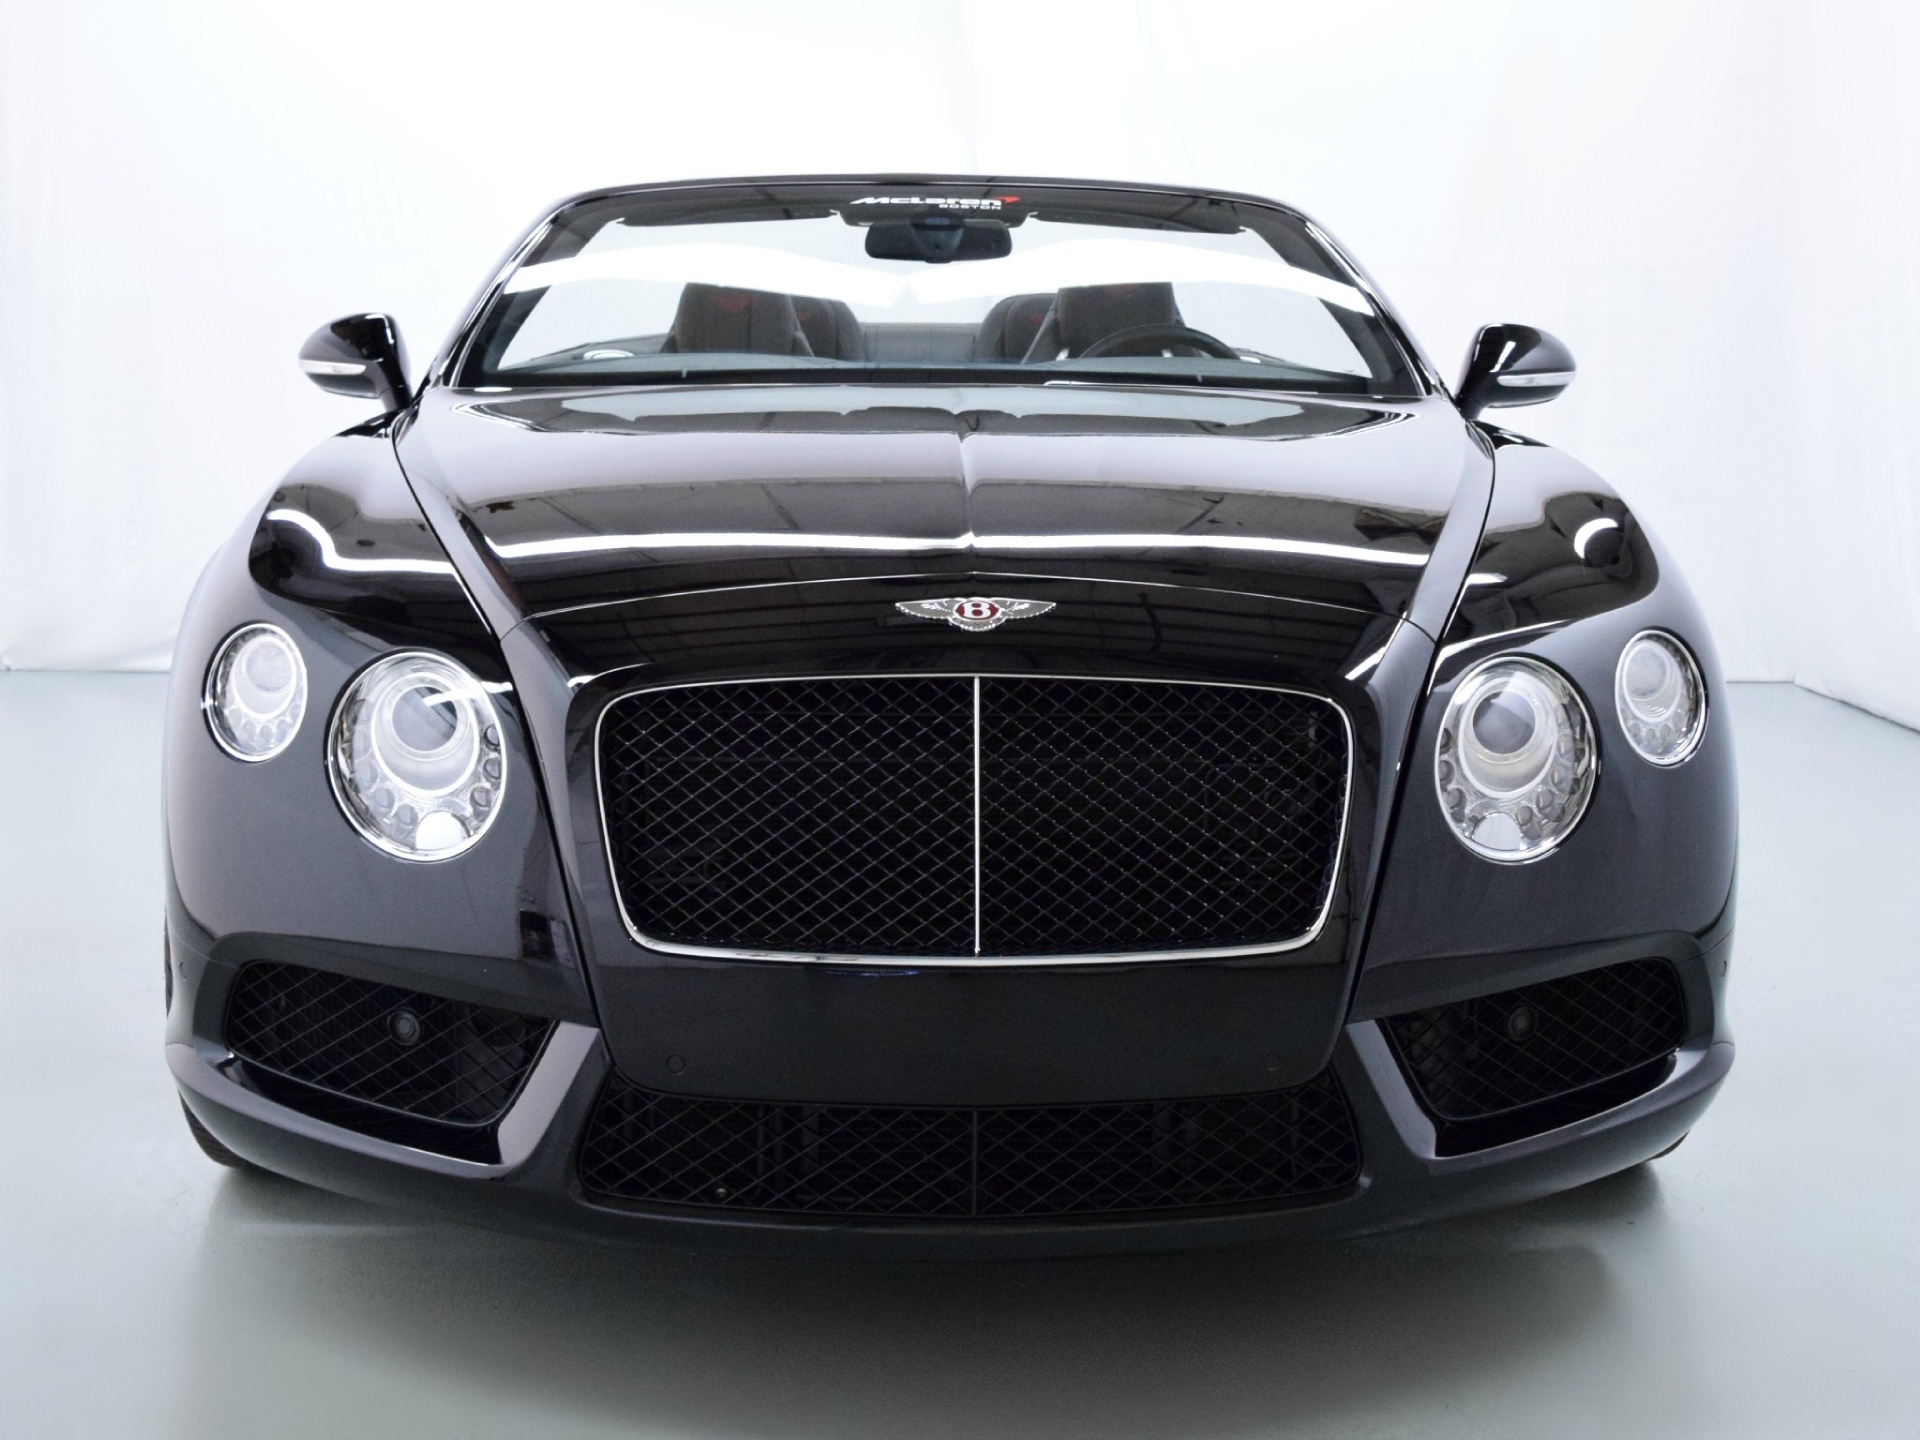 2014 bentley continental gtc v8 convertible 1462638 photo 8. Cars Review. Best American Auto & Cars Review